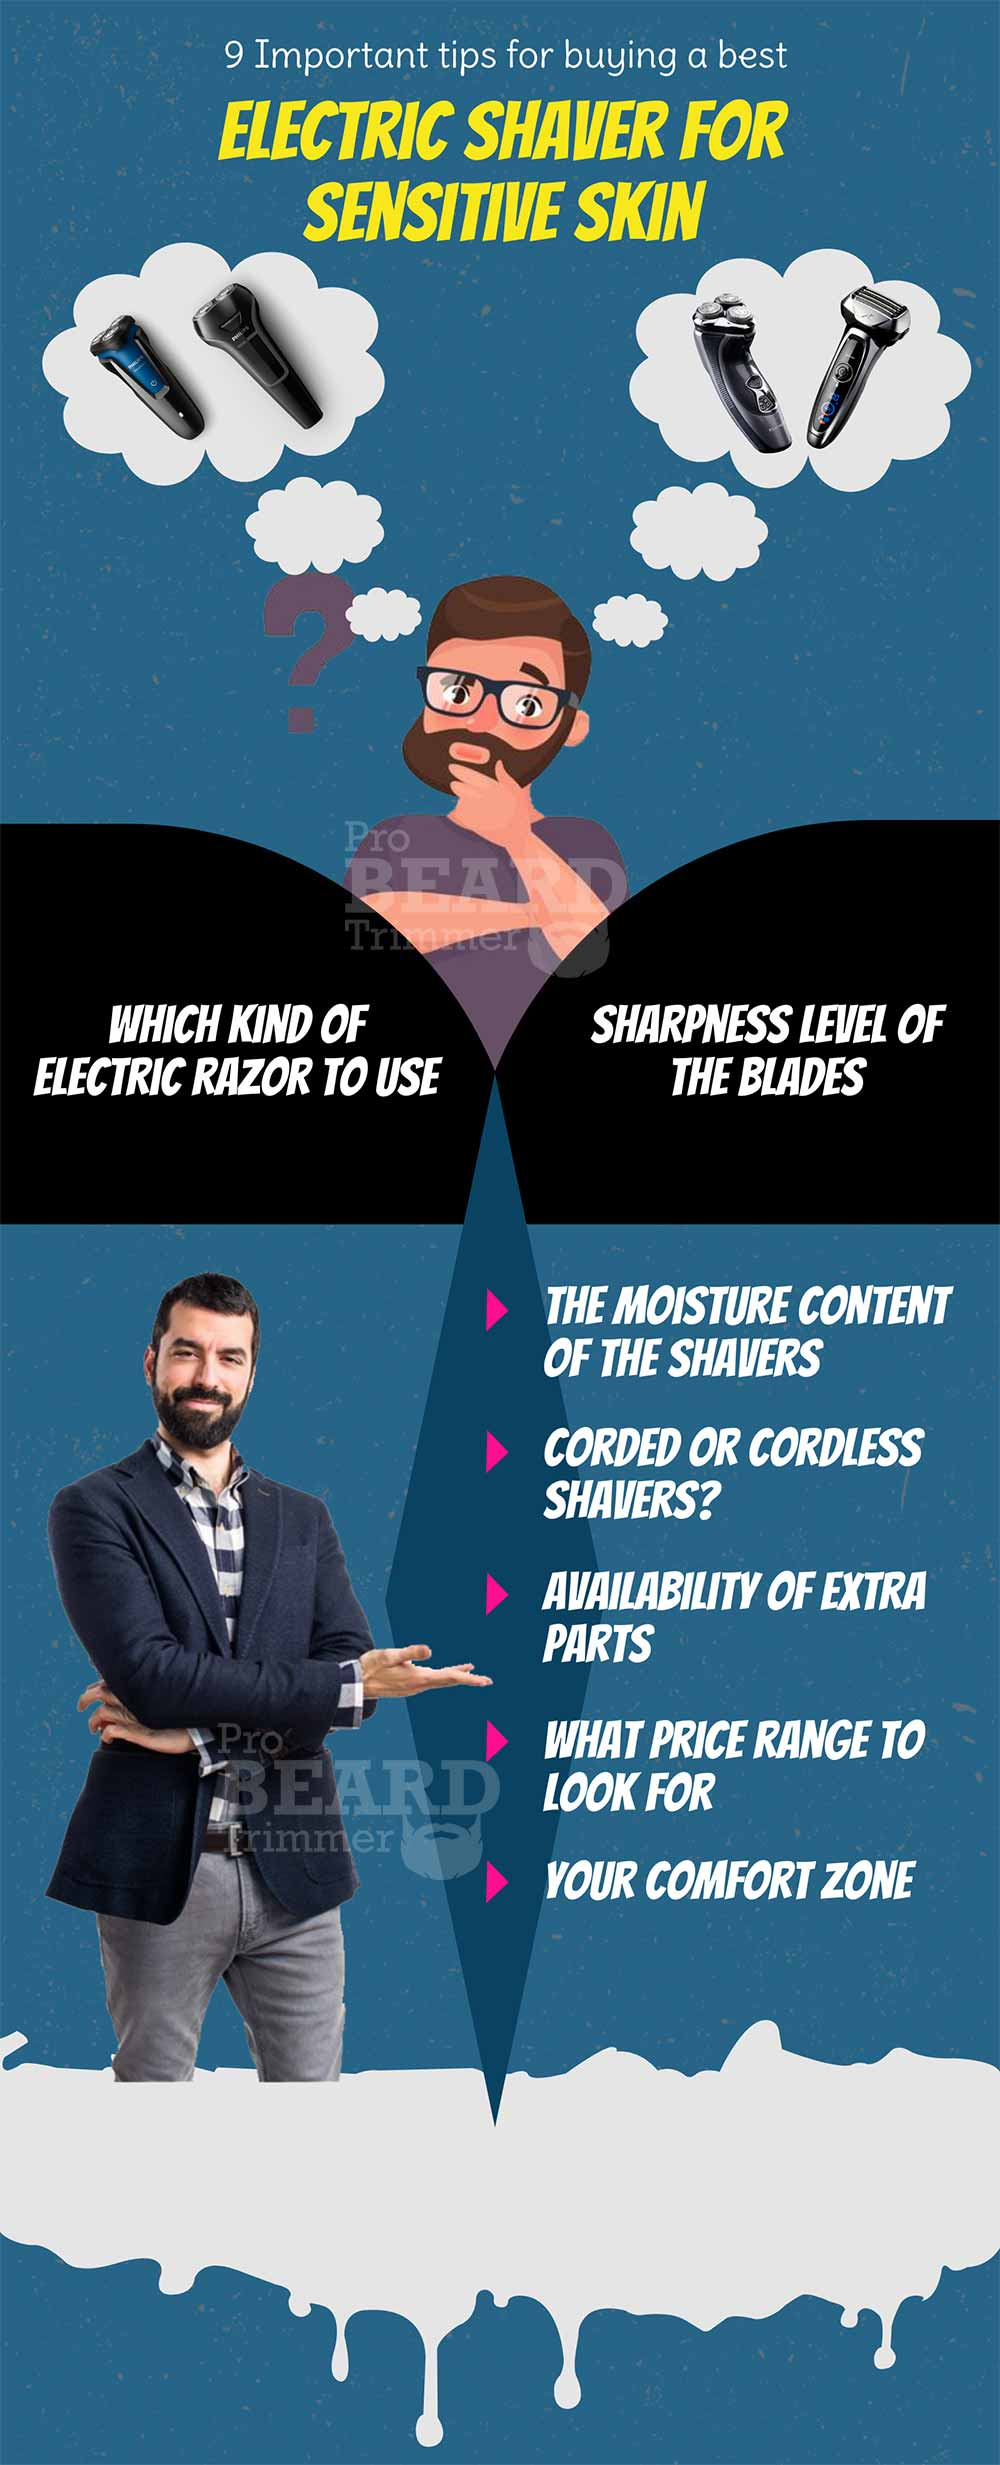 tips to buy electric shavers